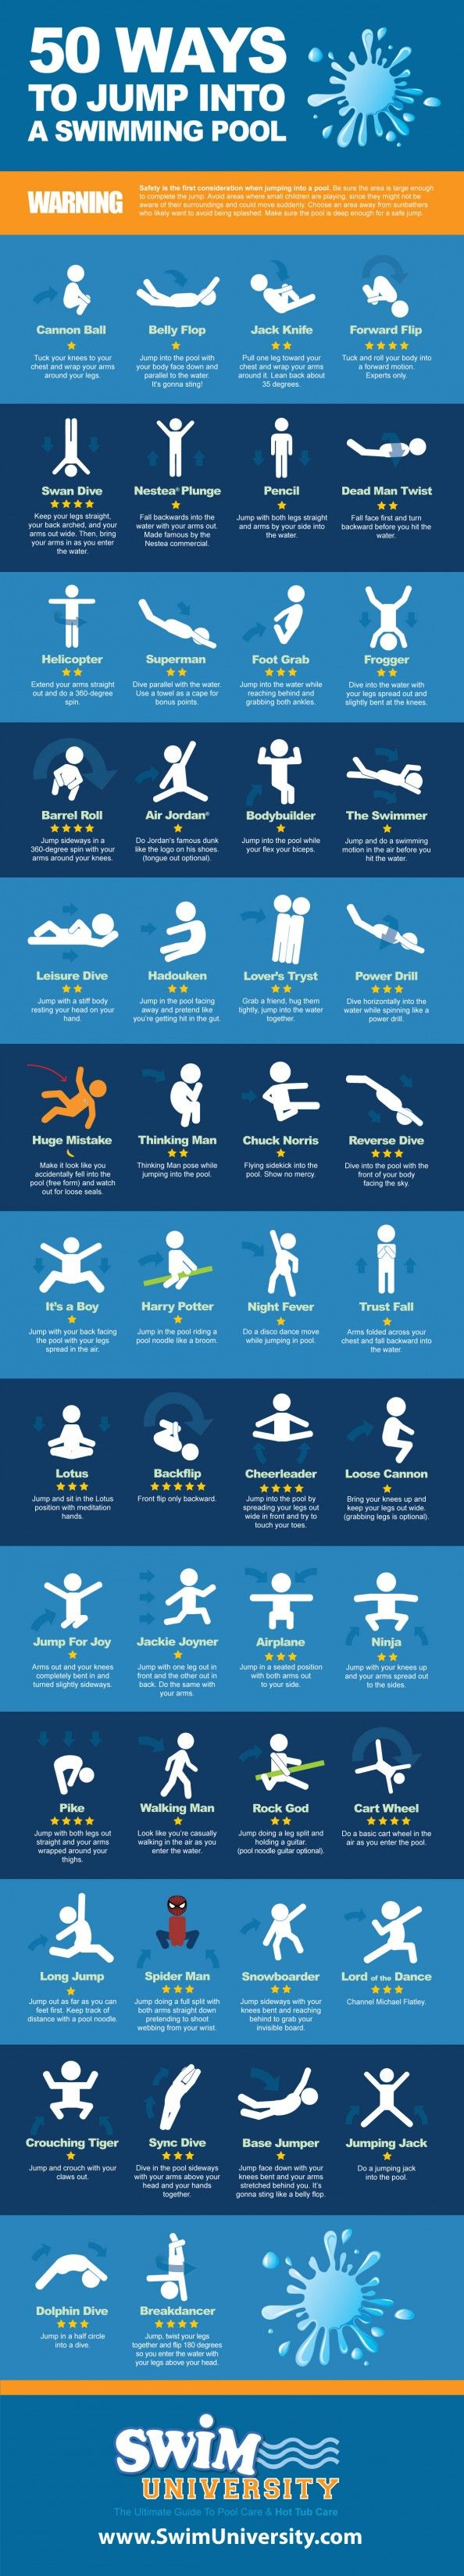 50 Ways to Jump Into a Swimming Pool Infographic - welcome to the weekend!  #TGIF #summer #swimming